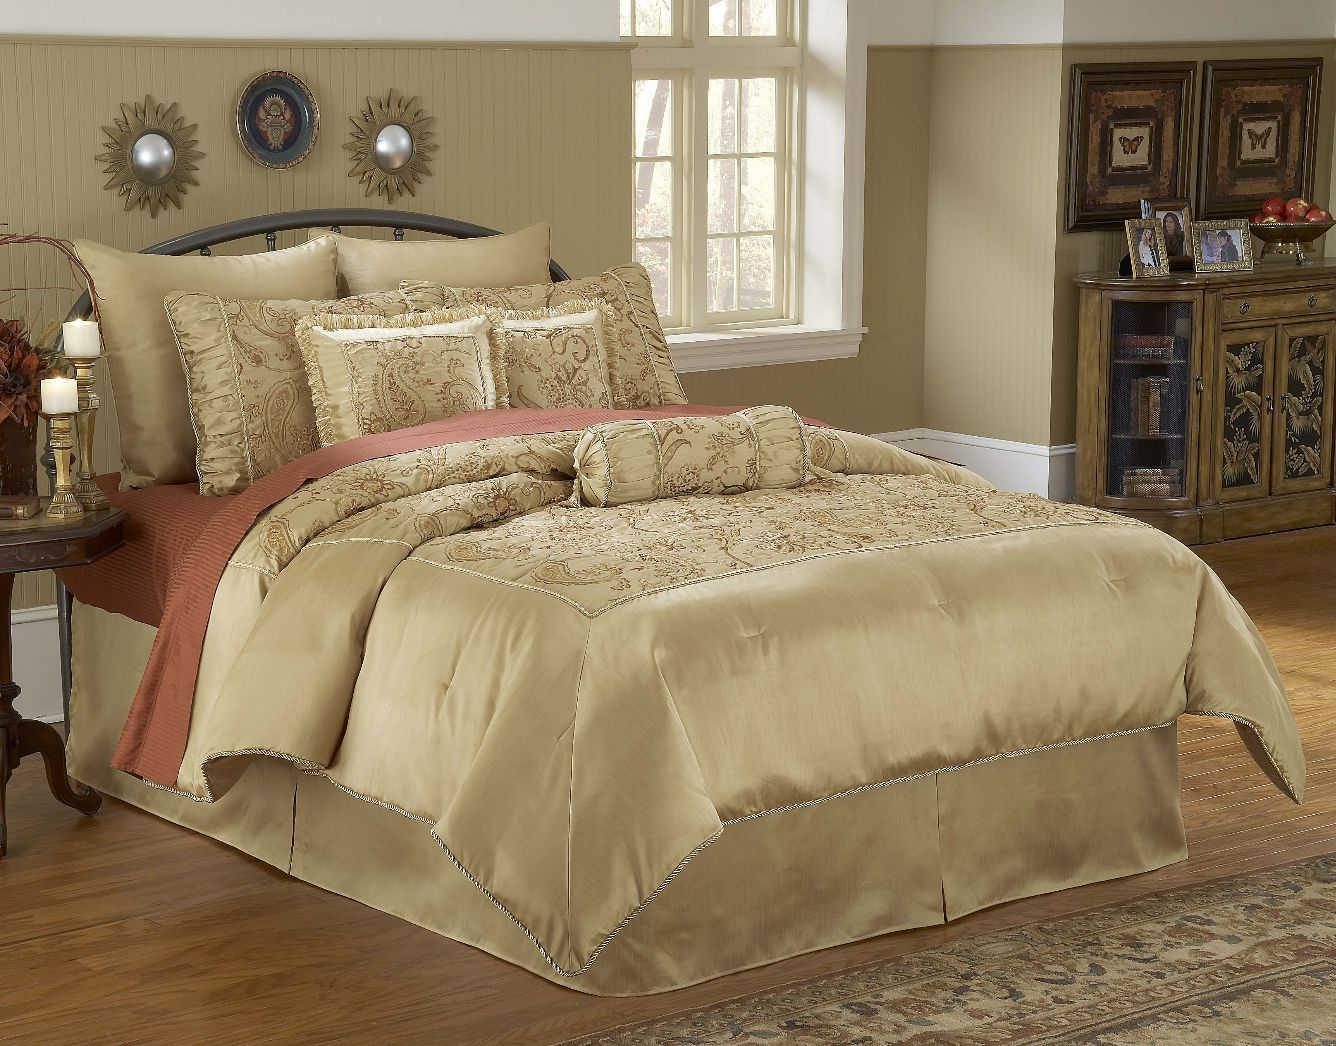 best  luxury comforter sets ideas only on pinterest  comforter  - elegant bedspreads  luxury comforter sets in queen  pc and king  pc sets